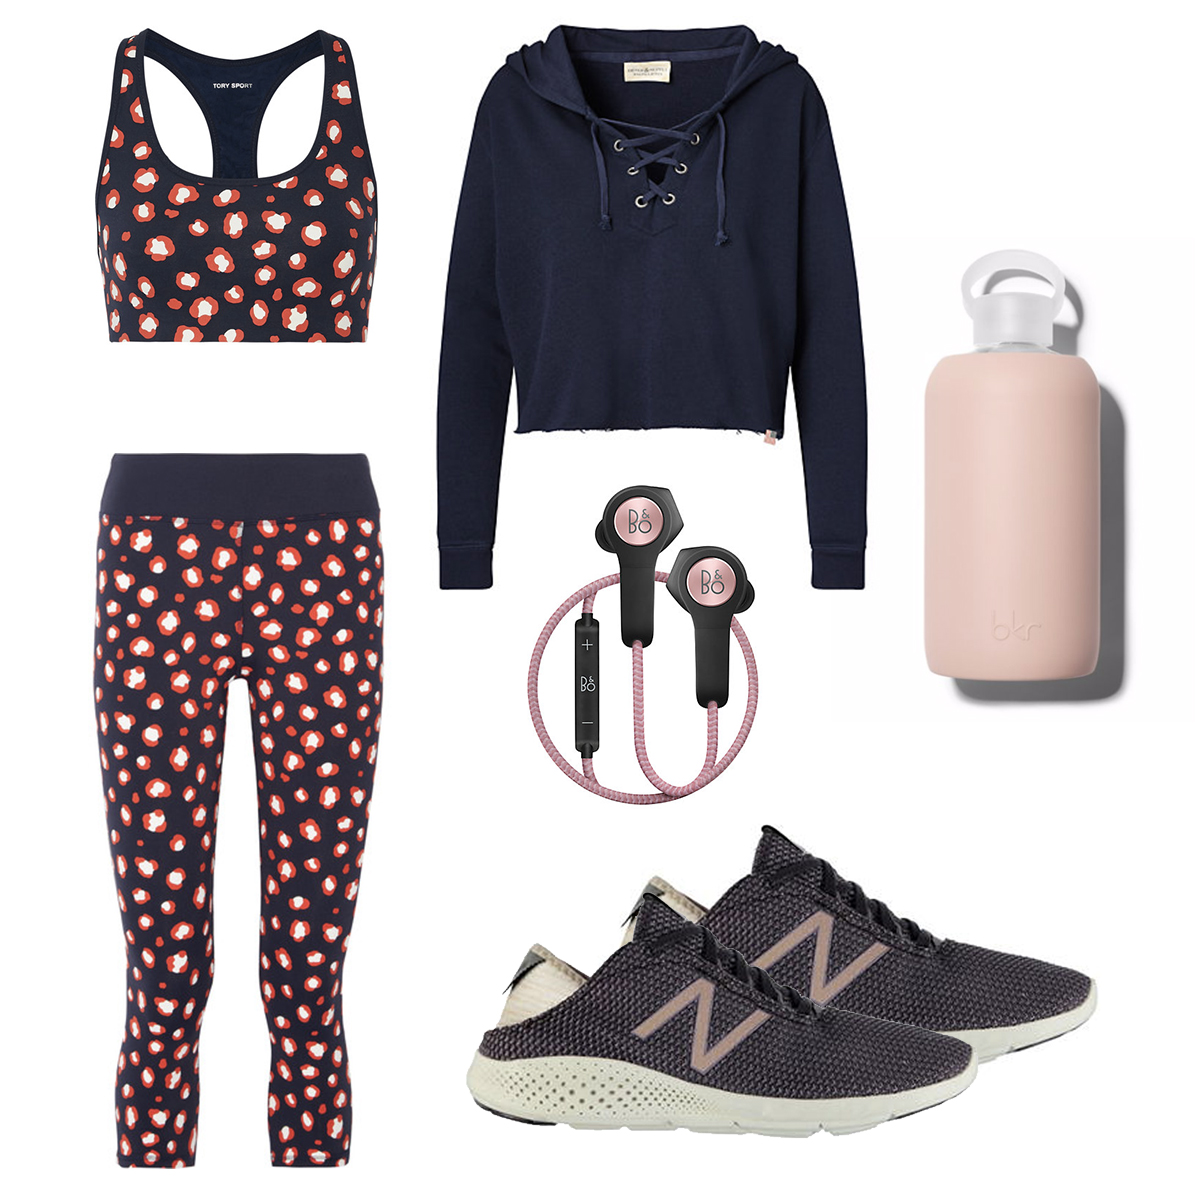 cruelty-free-chic-What-to-Wear-to-the-Gym